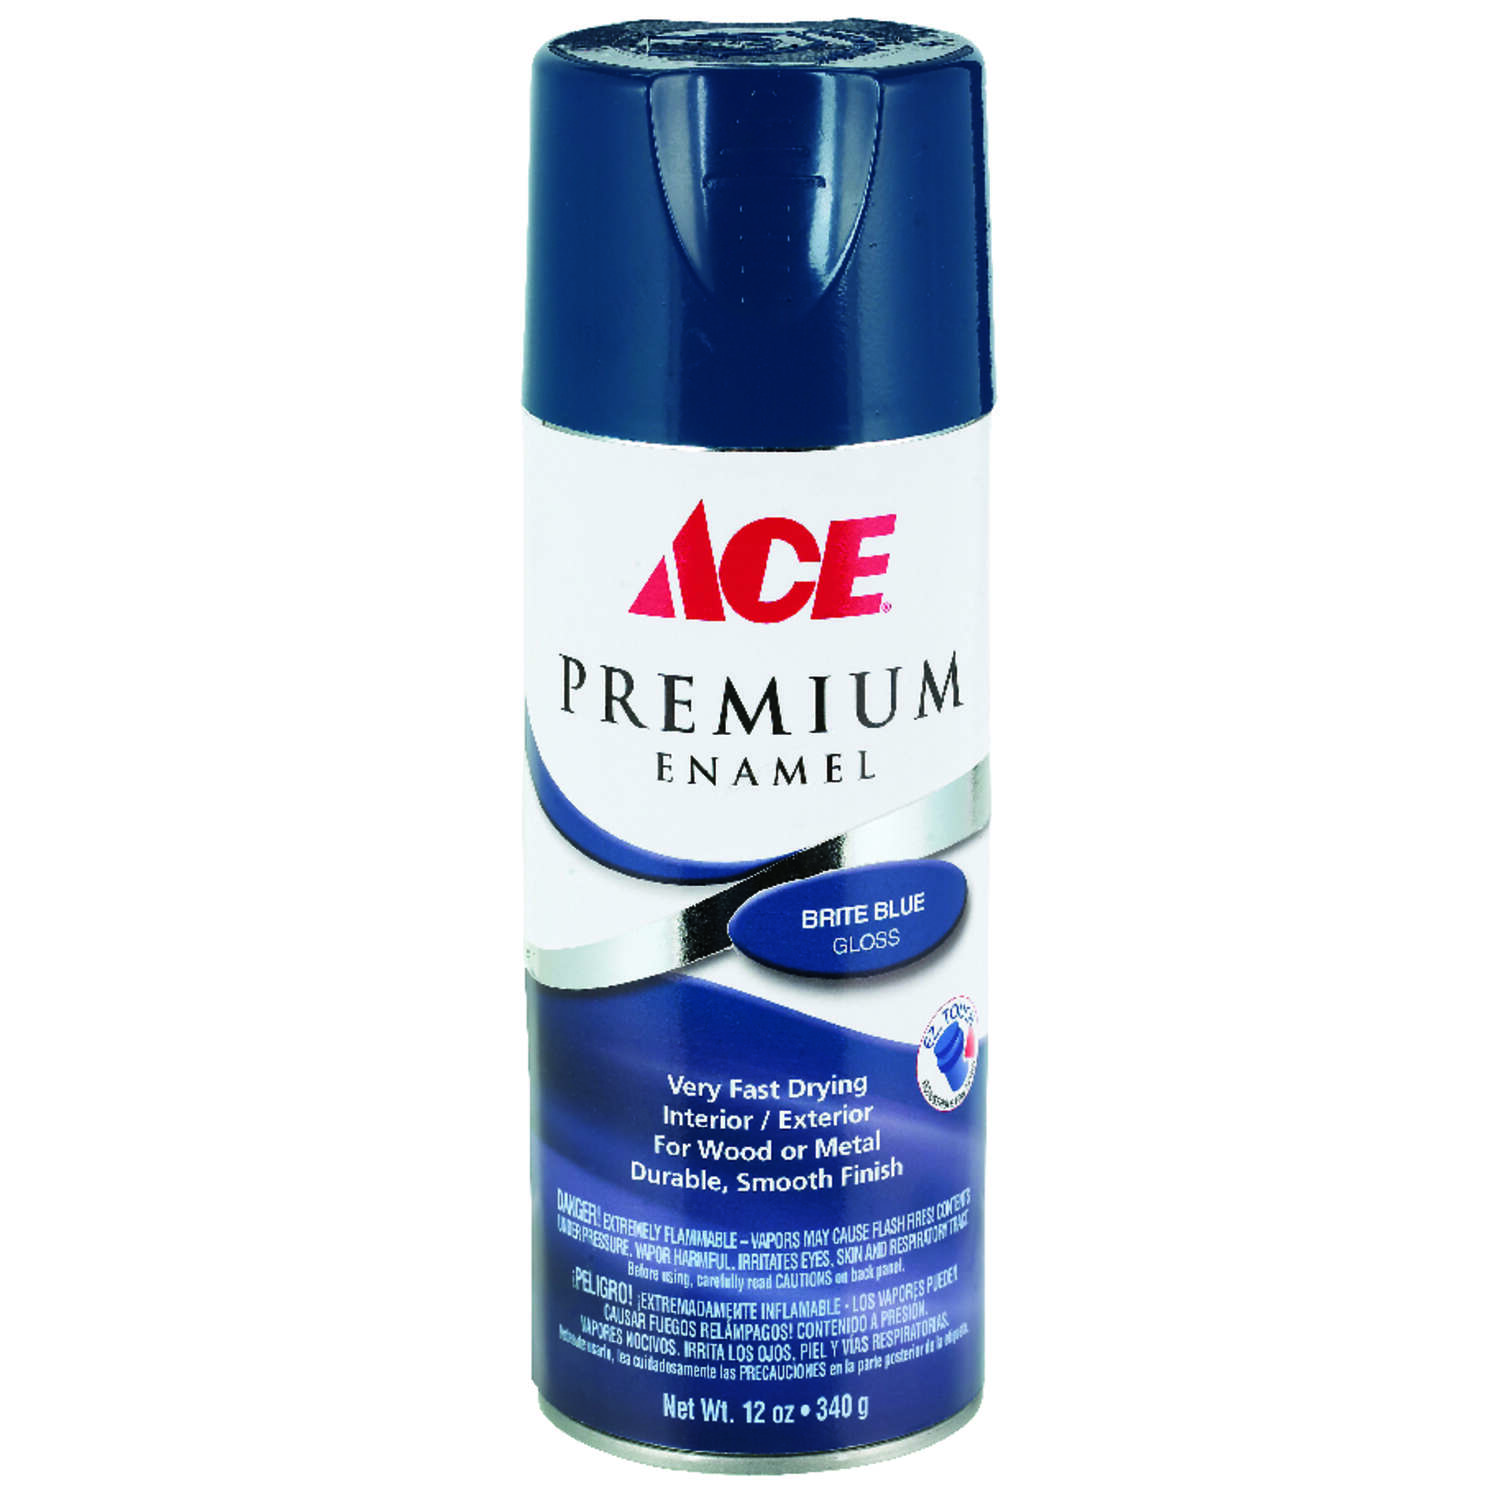 Ace  Premium  Gloss  Brite Blue  Enamel Spray Paint  12 oz.